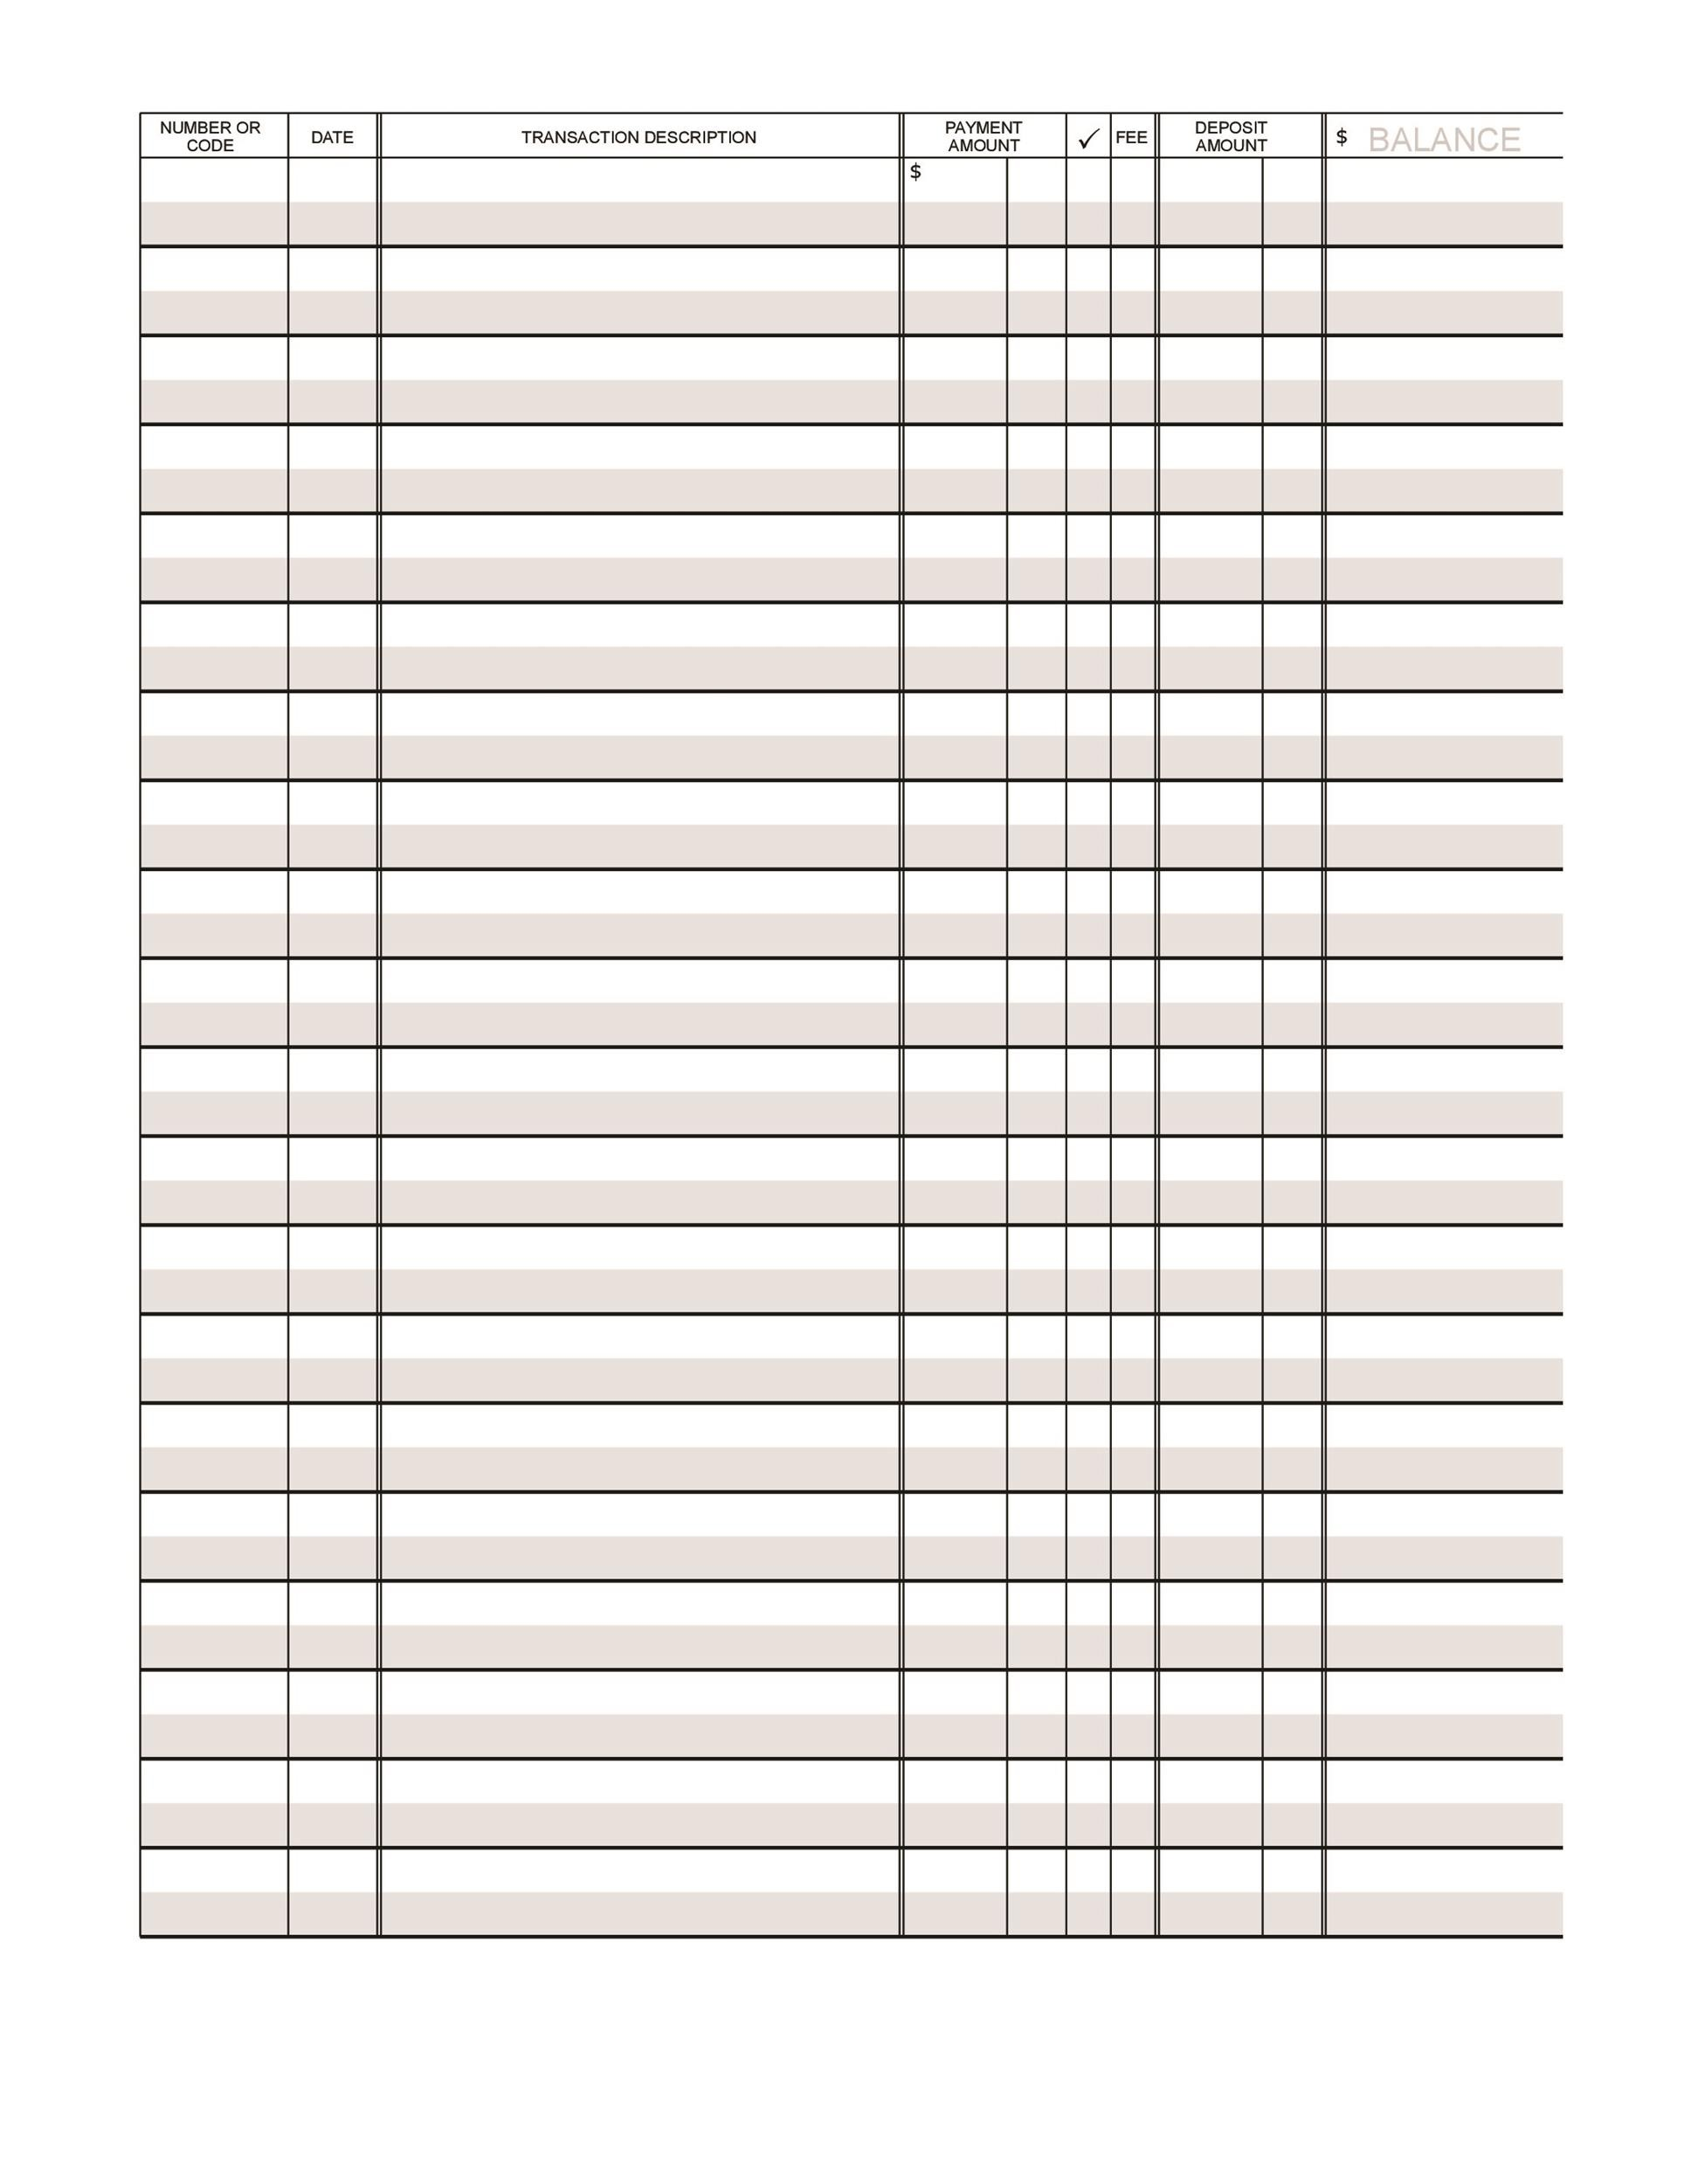 image relating to Banking Register Printable referred to as 37 Checkbook Sign up Templates [100% Free of charge, Printable] ᐅ